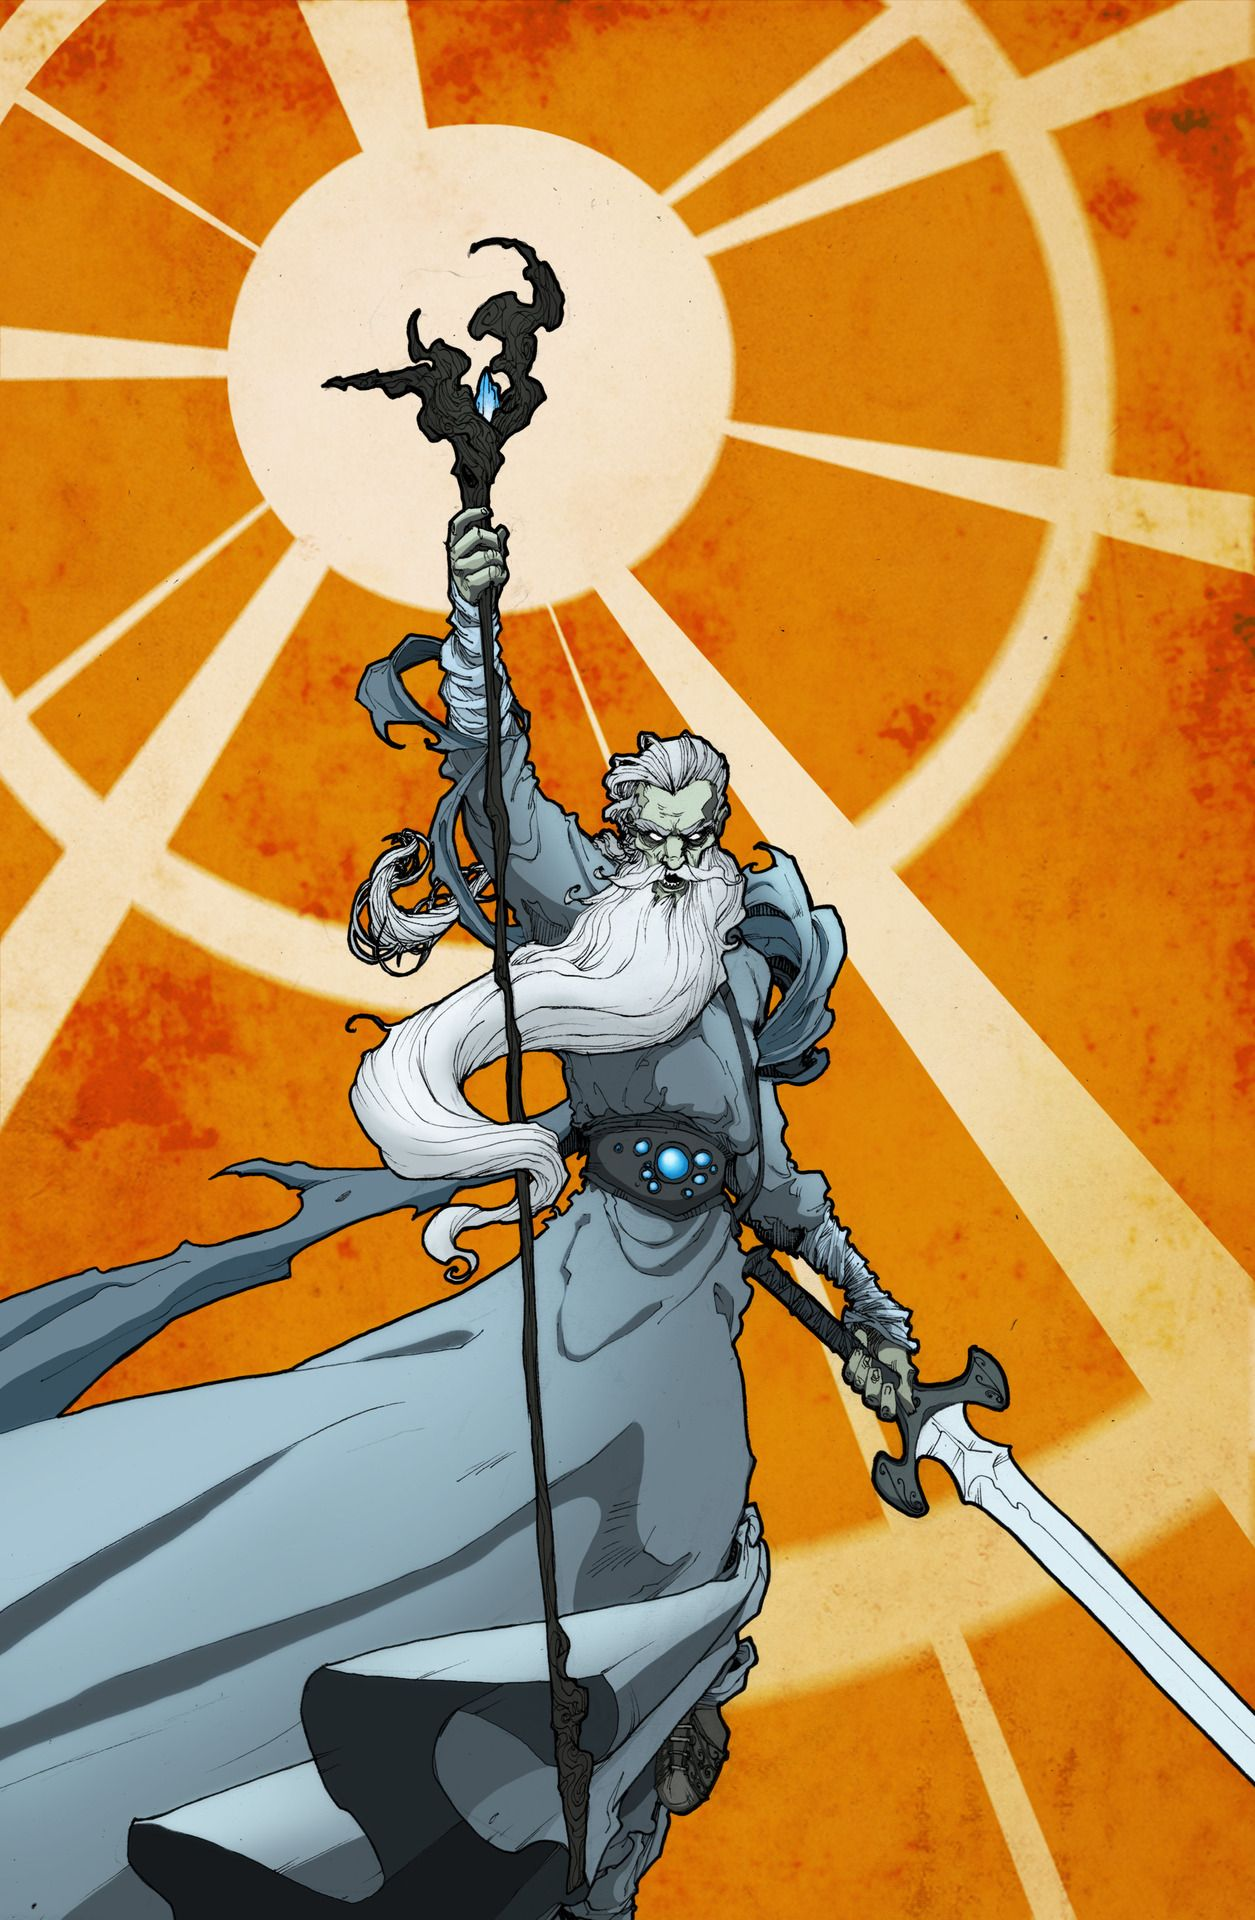 Character Design Zach : Lord of the rings gandalf by zach brunner sci fi sky